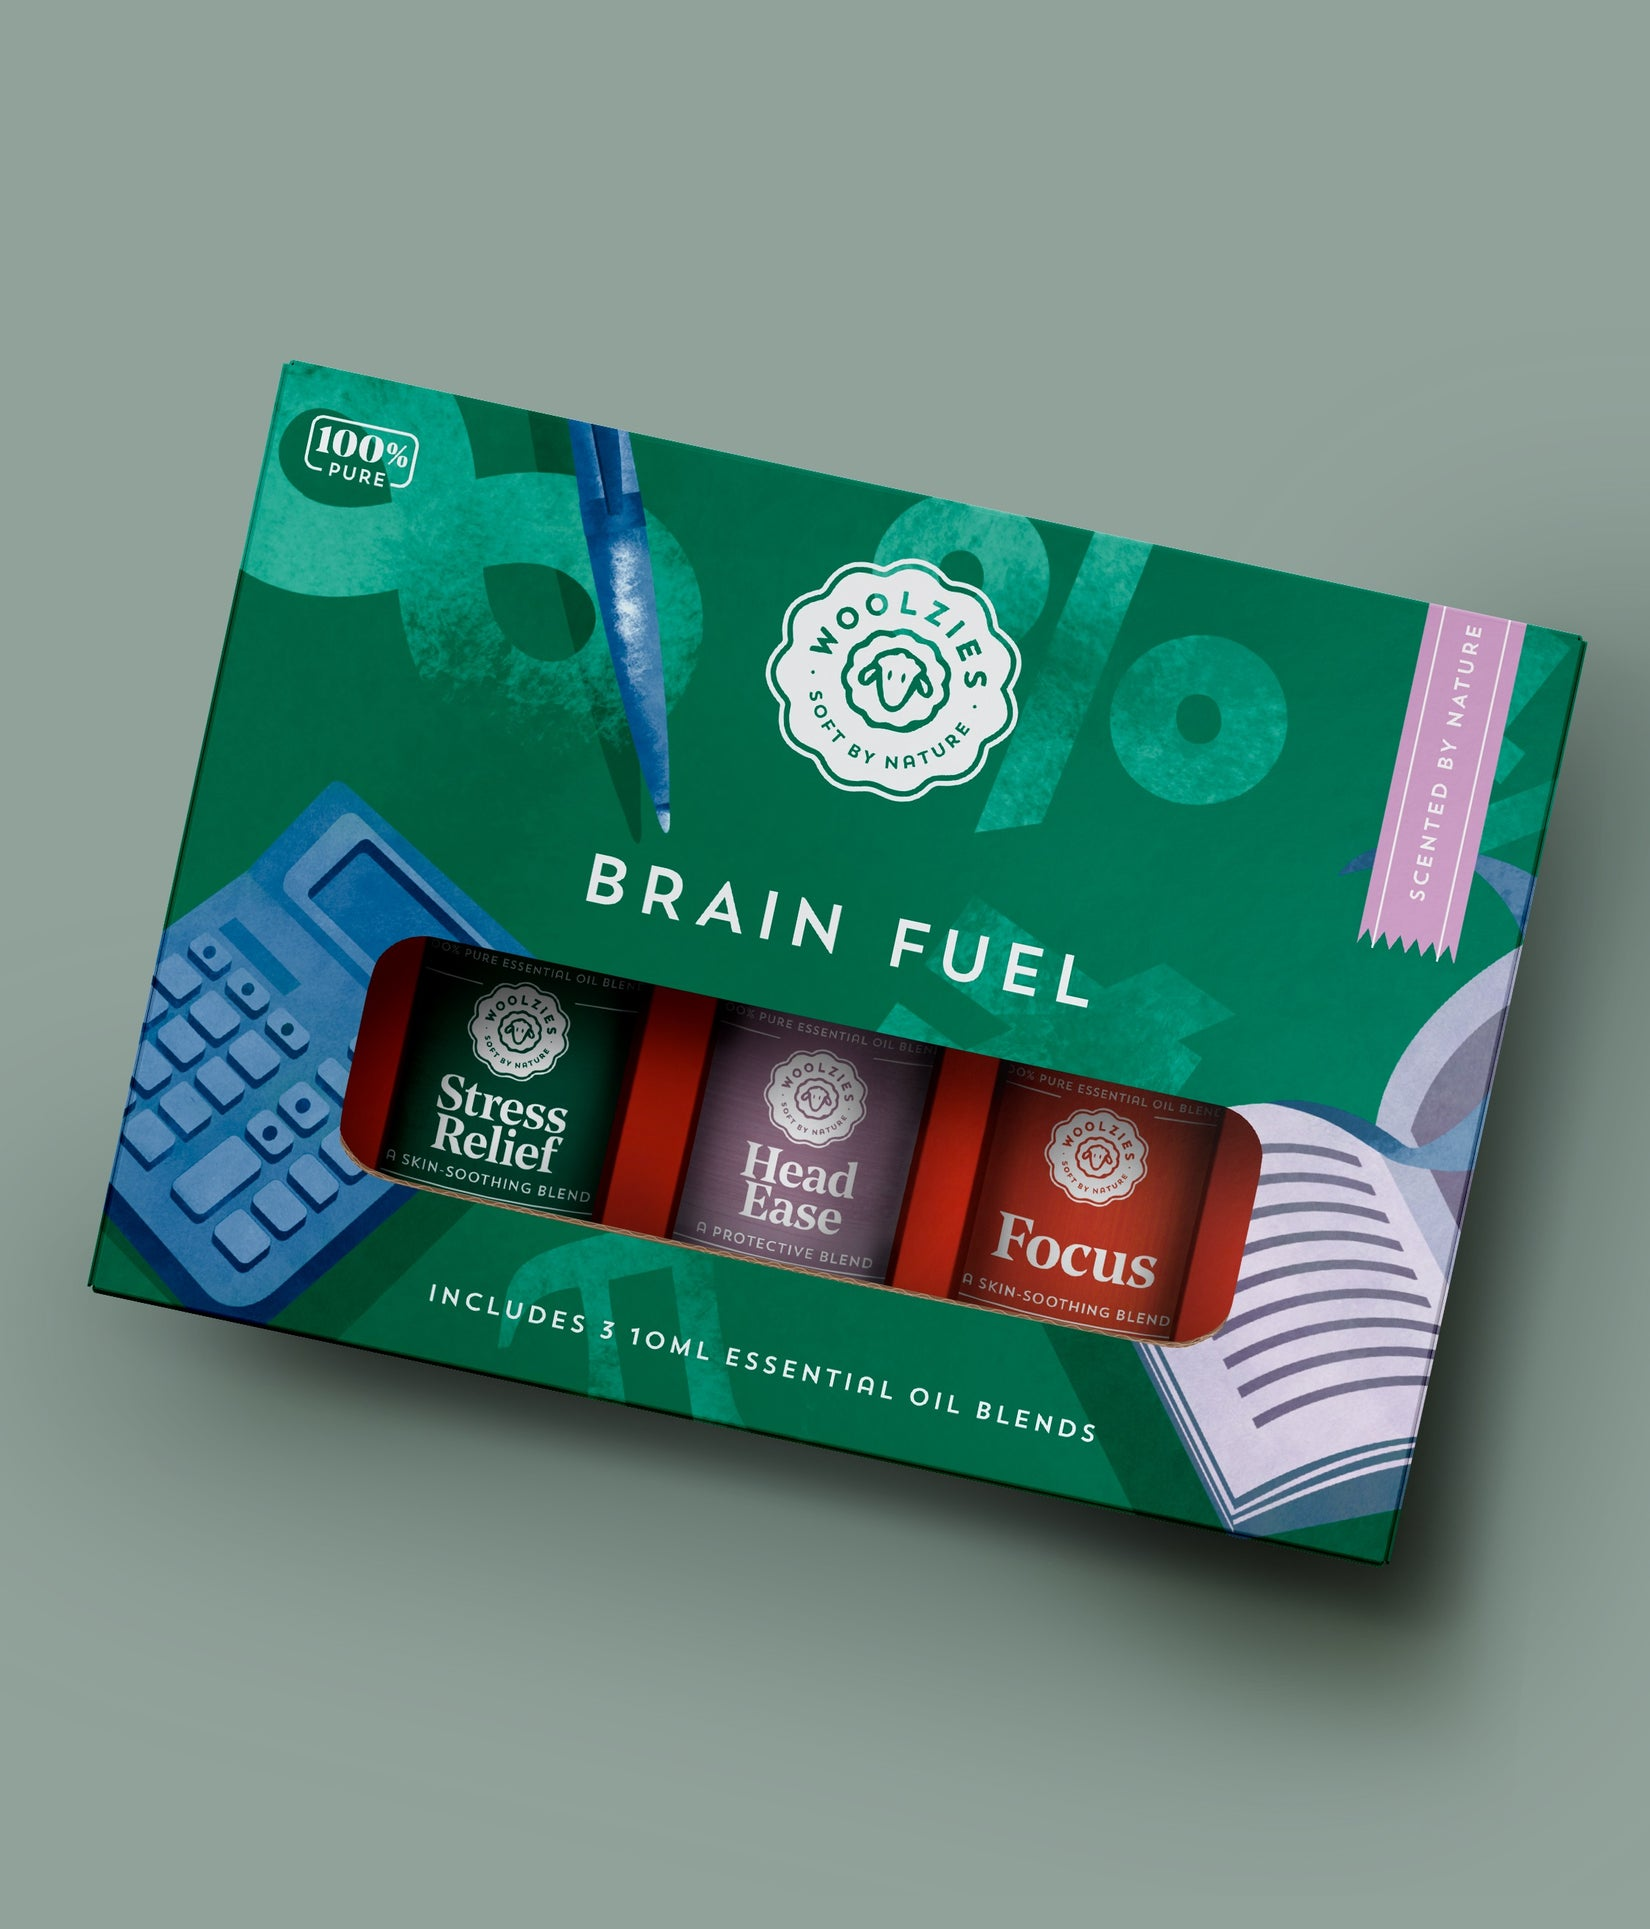 The Brain Fuel Collection